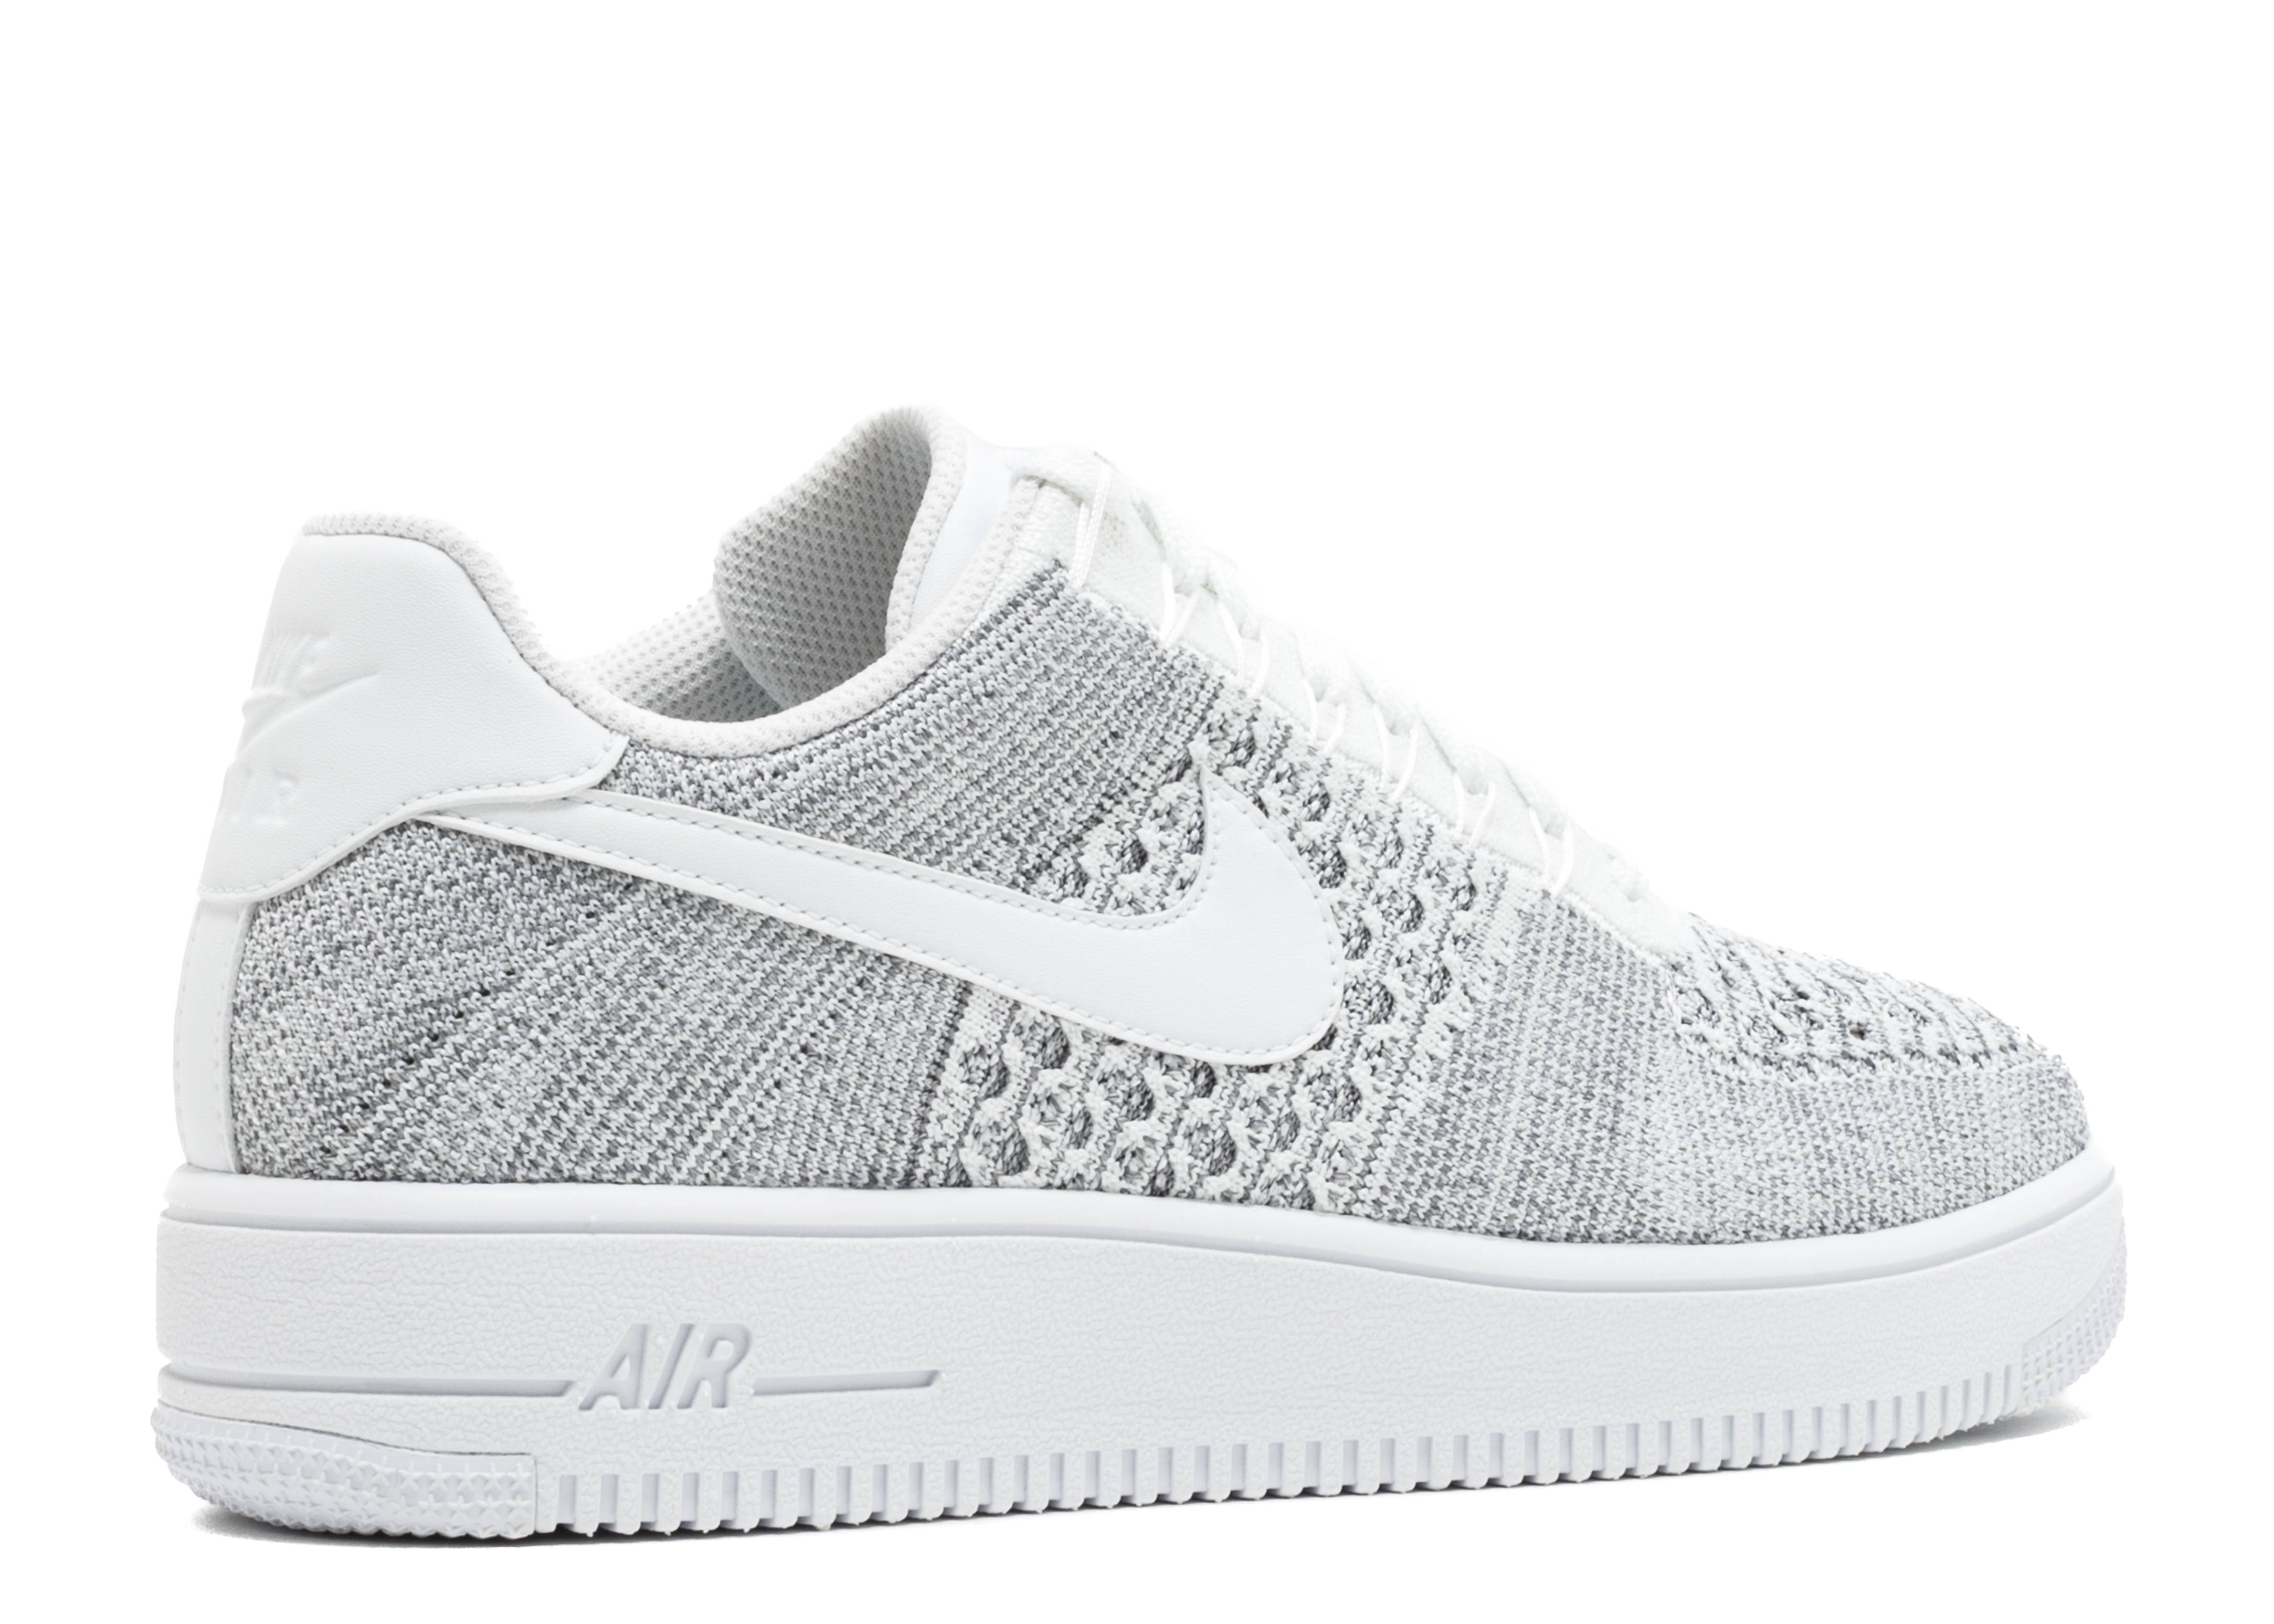 5b15a453d517 Air Force 1 Flyknit Low - Nike - 817419 006 - cool grey white white ...